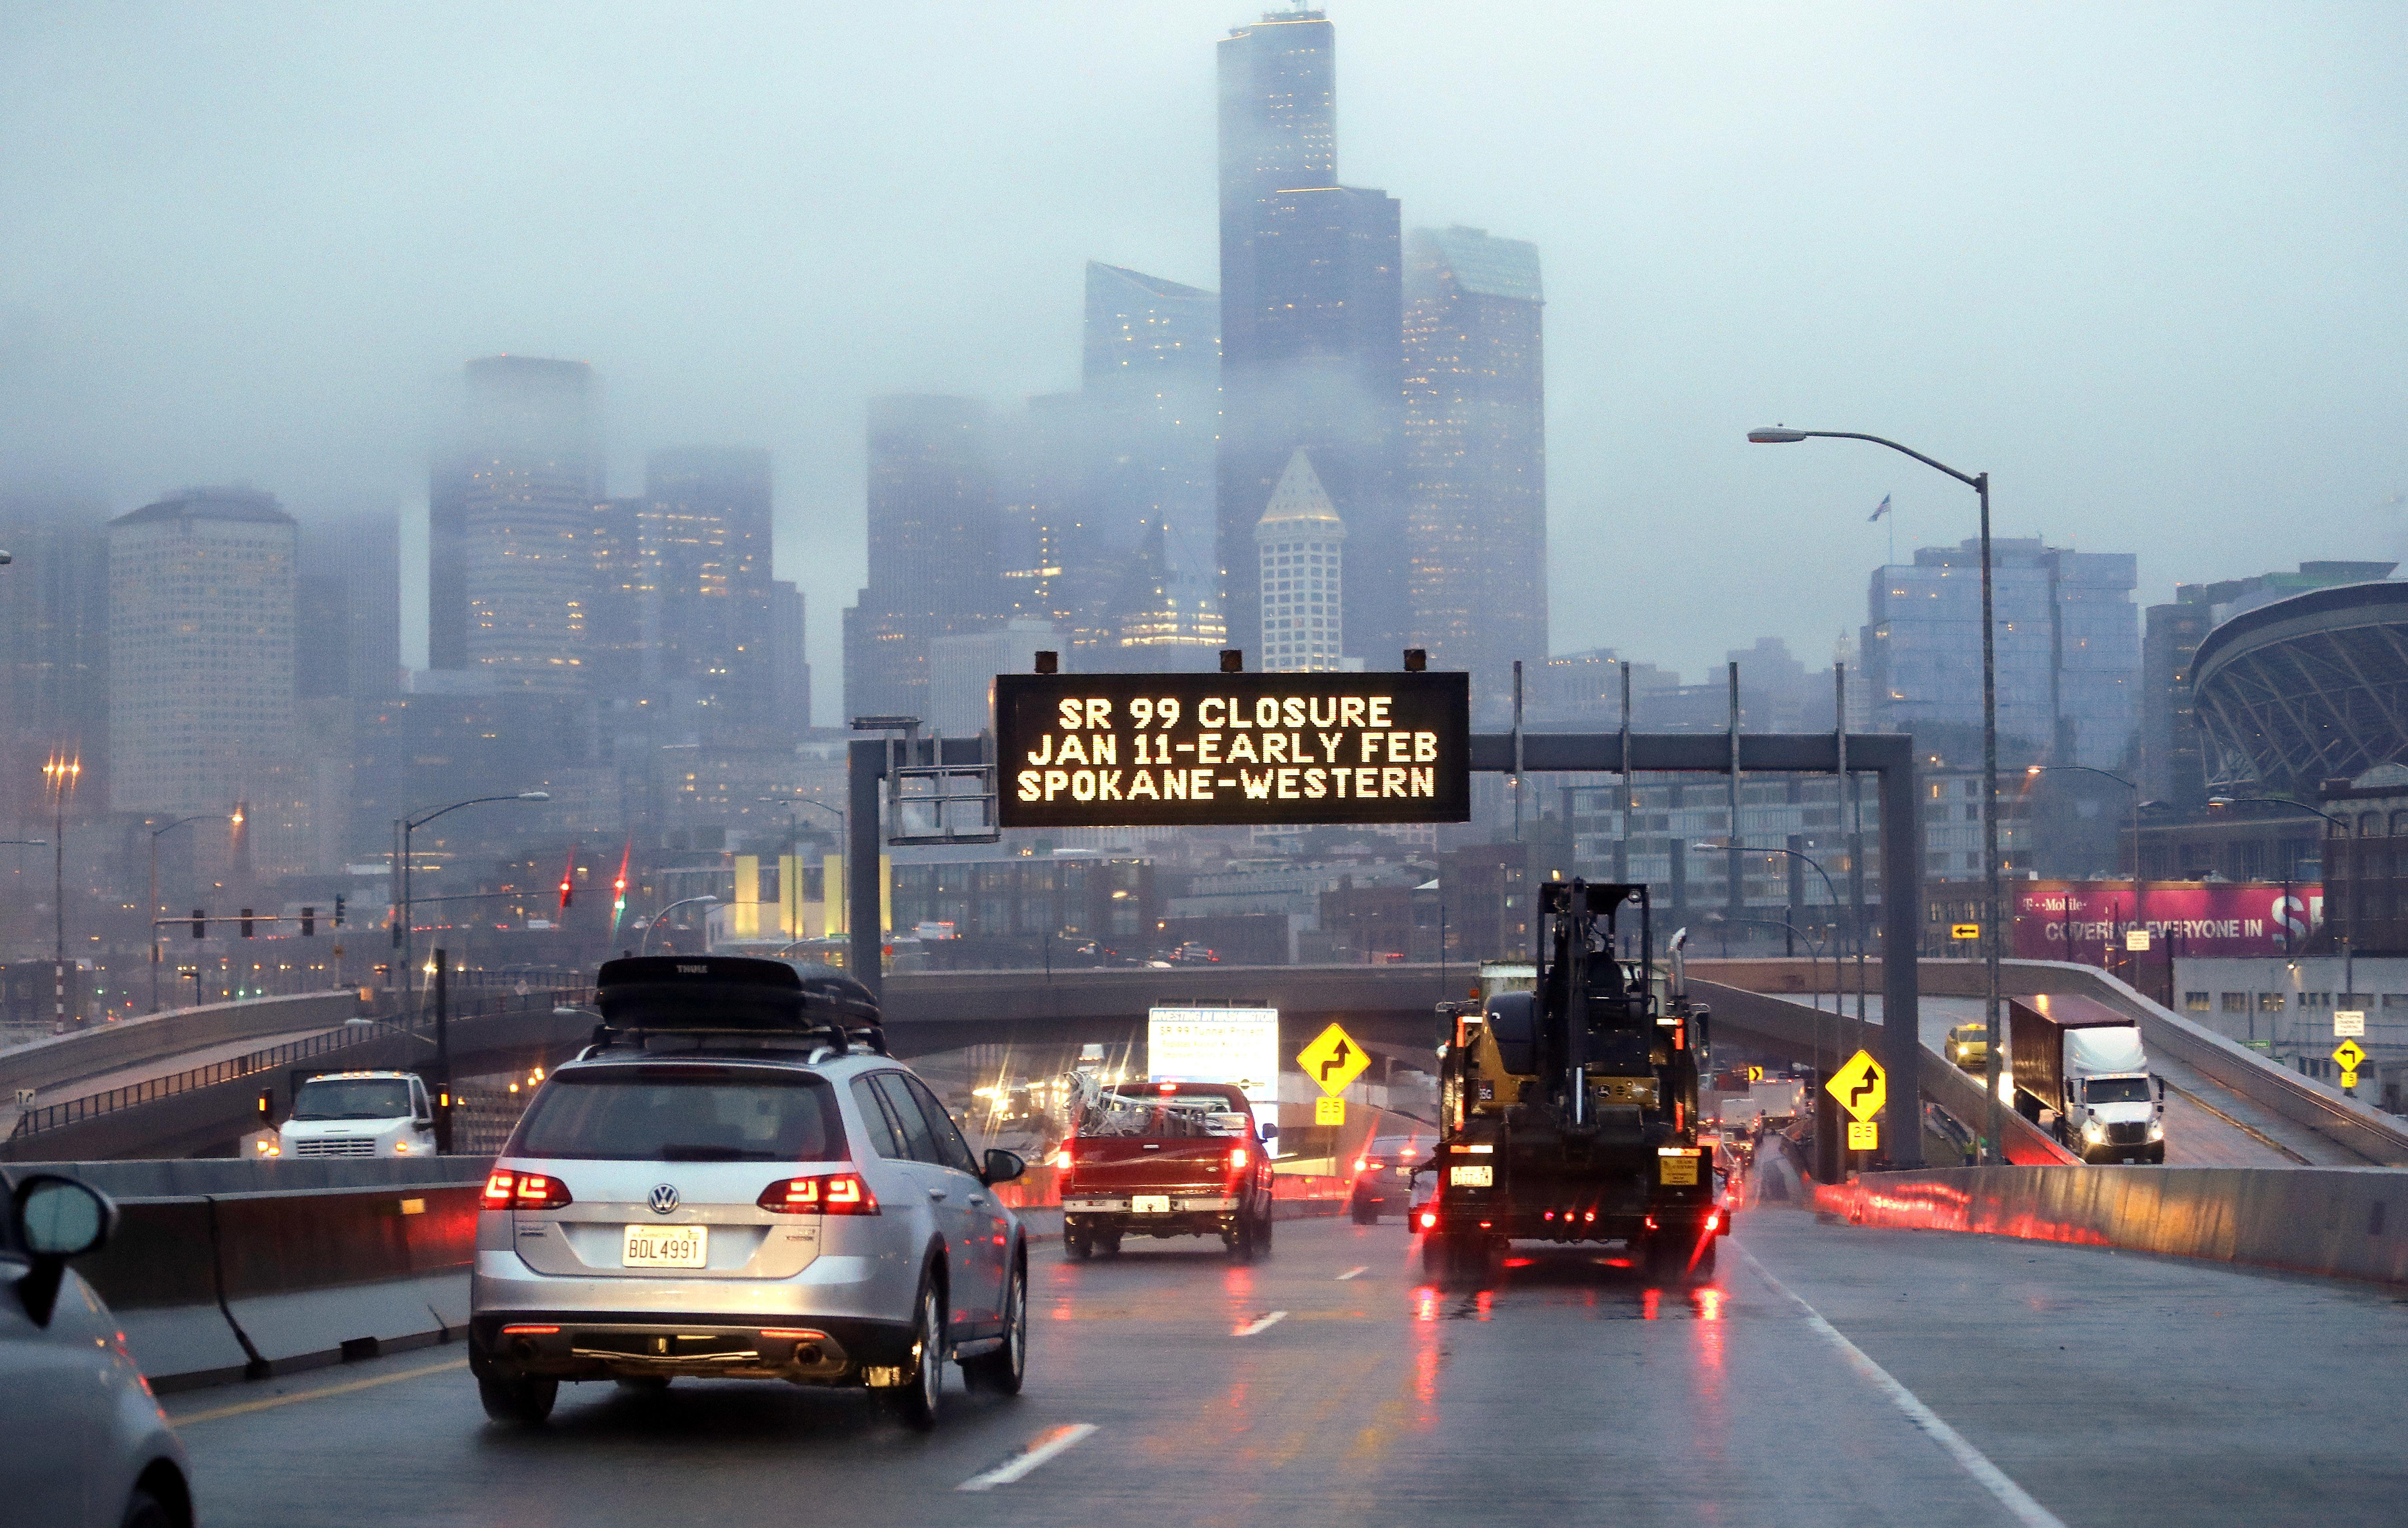 Seattle braces for highway closure, historic traffic squeeze | The